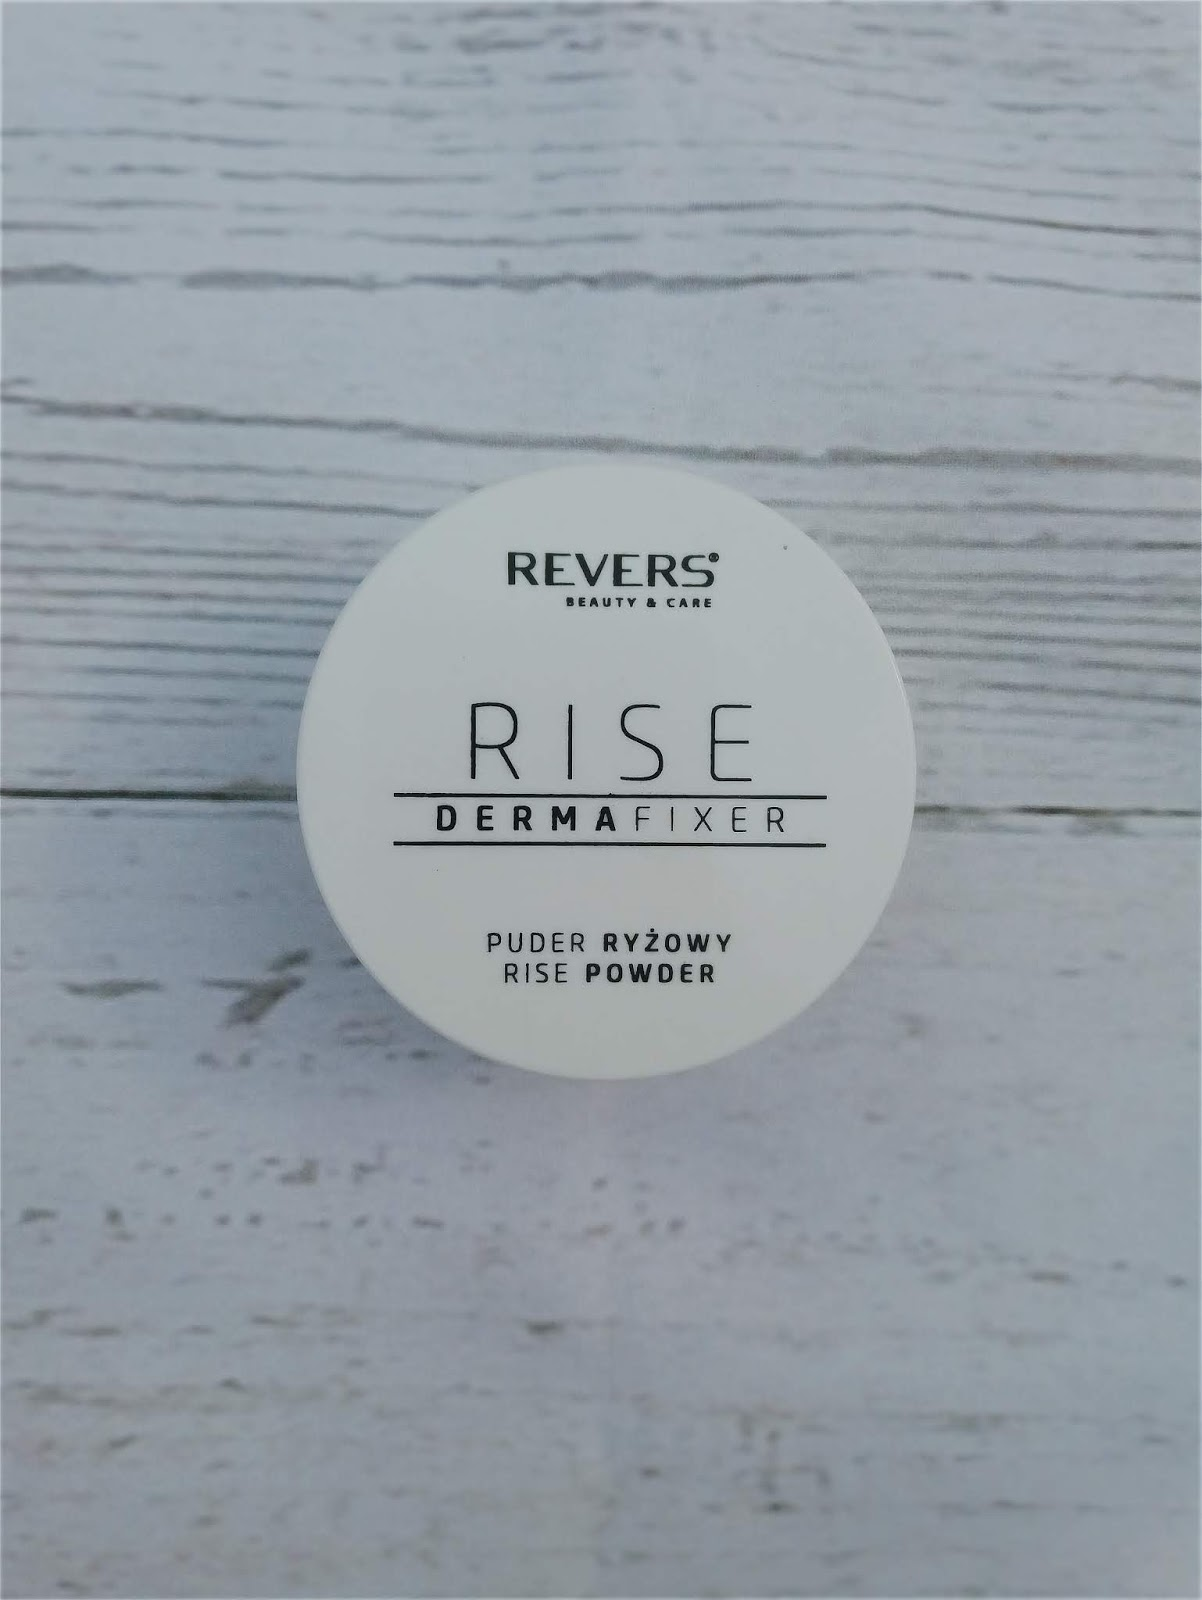 REVERS, RISE DERMAFIXER, PUDER RYŻOWY